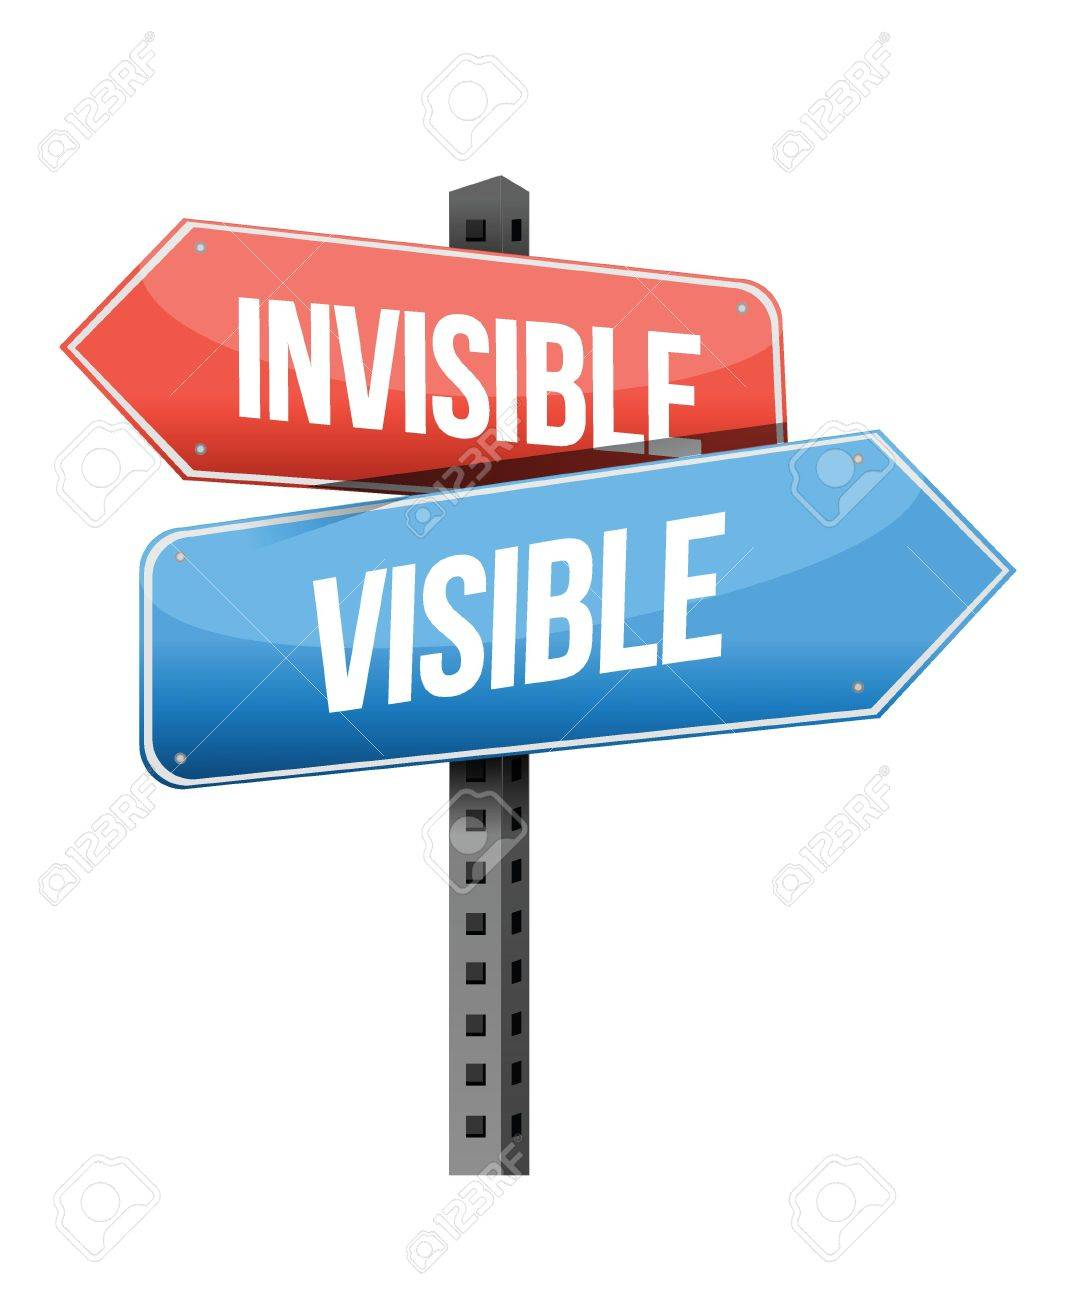 1070x1300 Invisible, Visible Road Sign Illustration Design Over A White